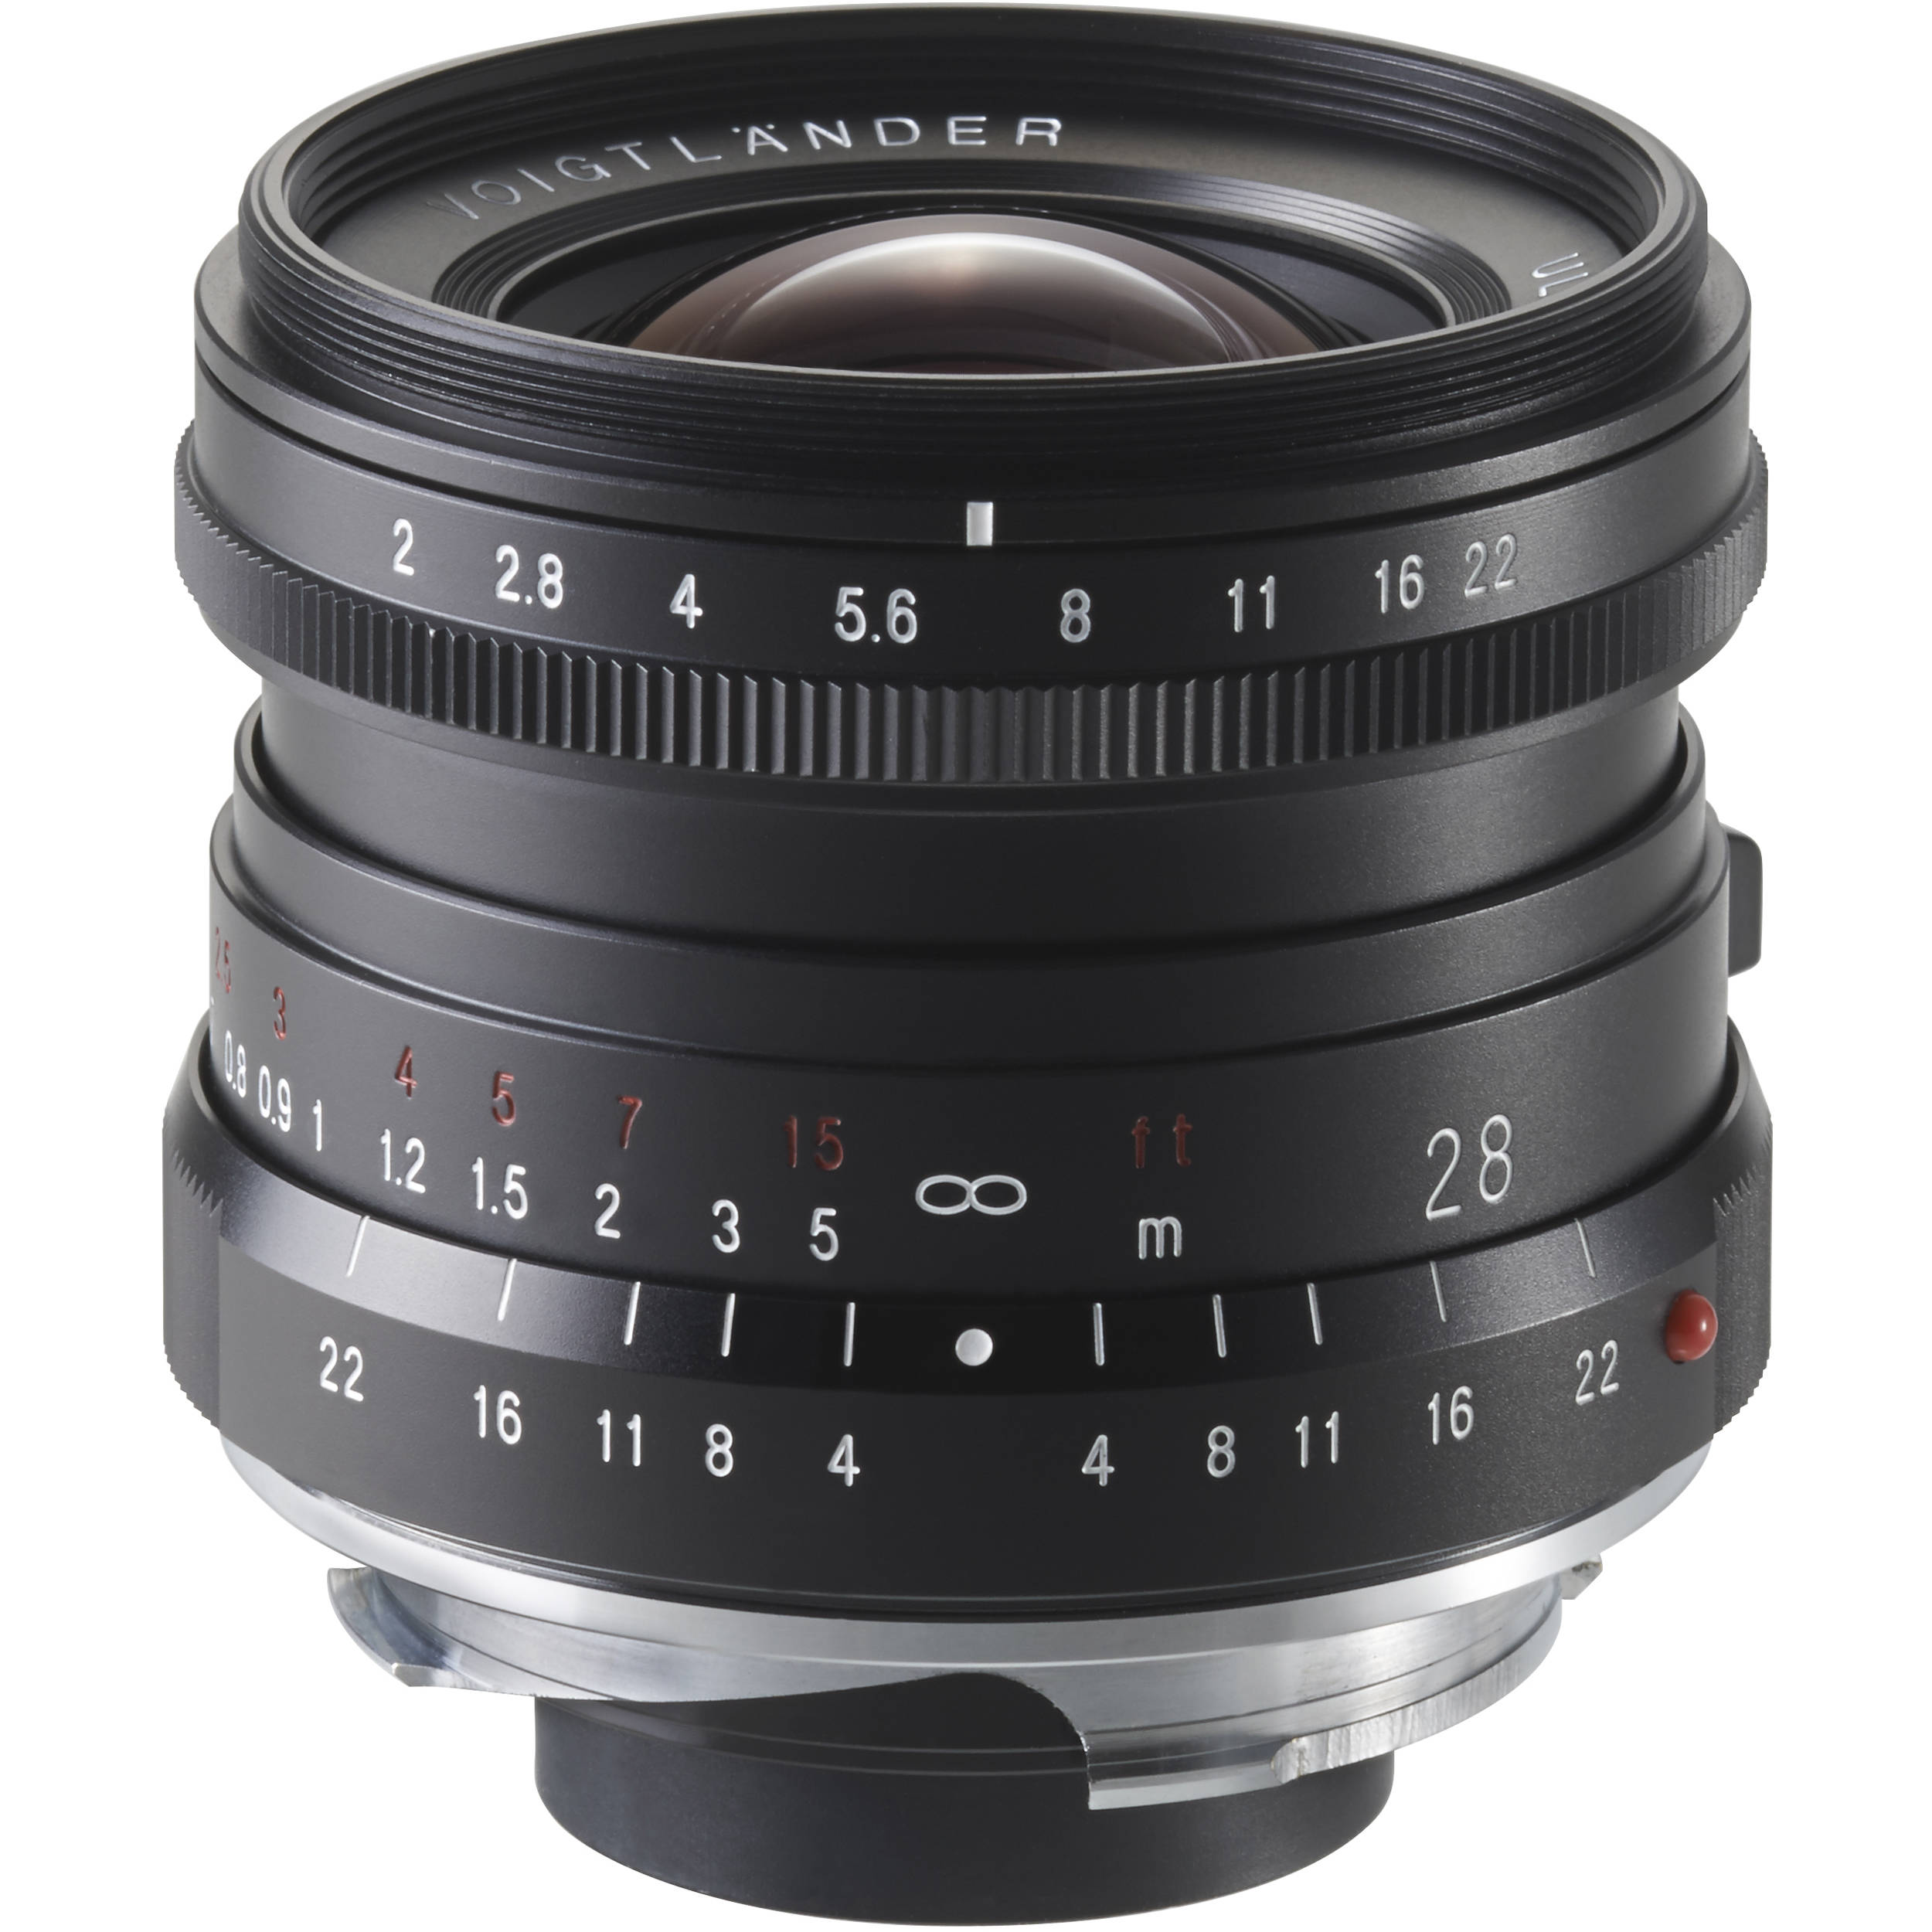 Voigtlander 28mm f/2 Ultron - Photography Life